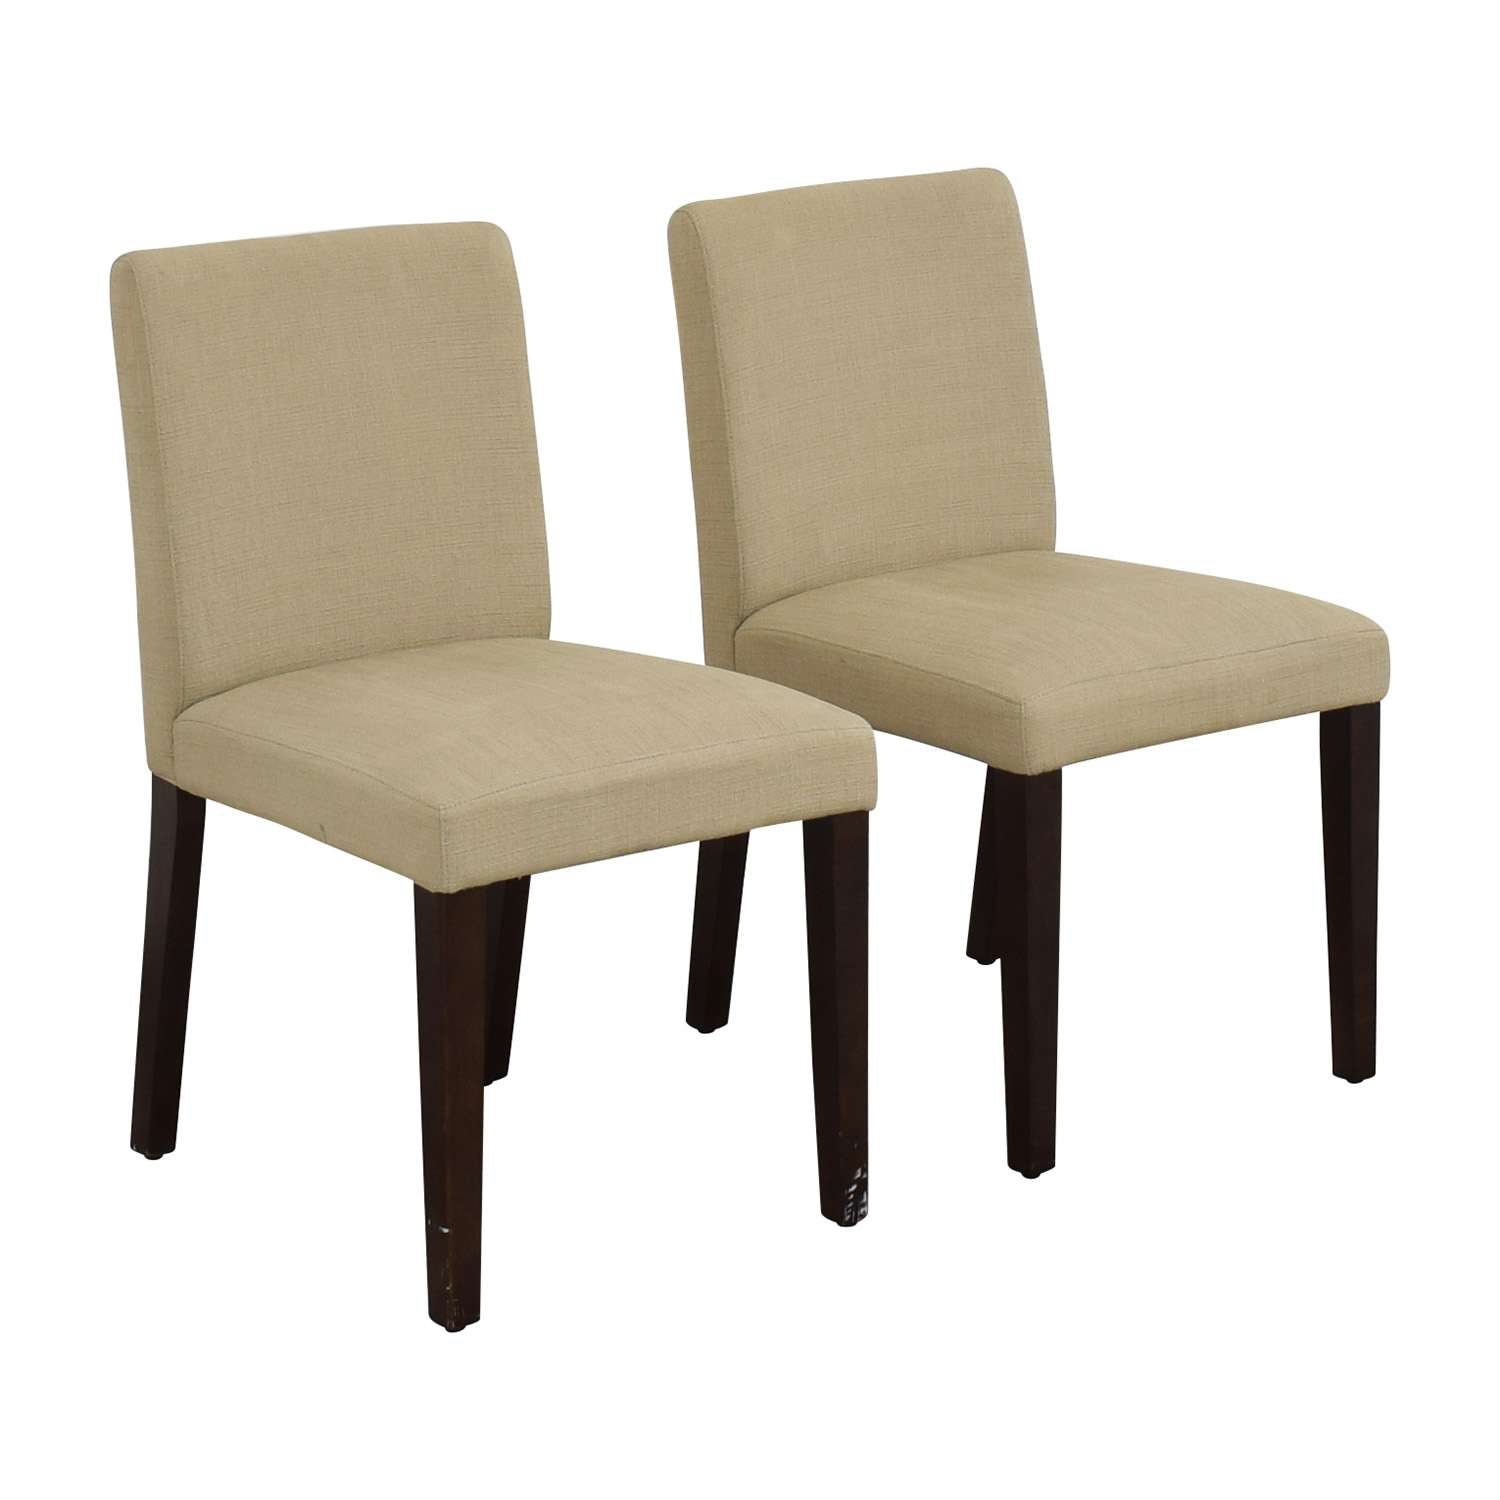 West Elm West Elm Porter Side Chairs on sale